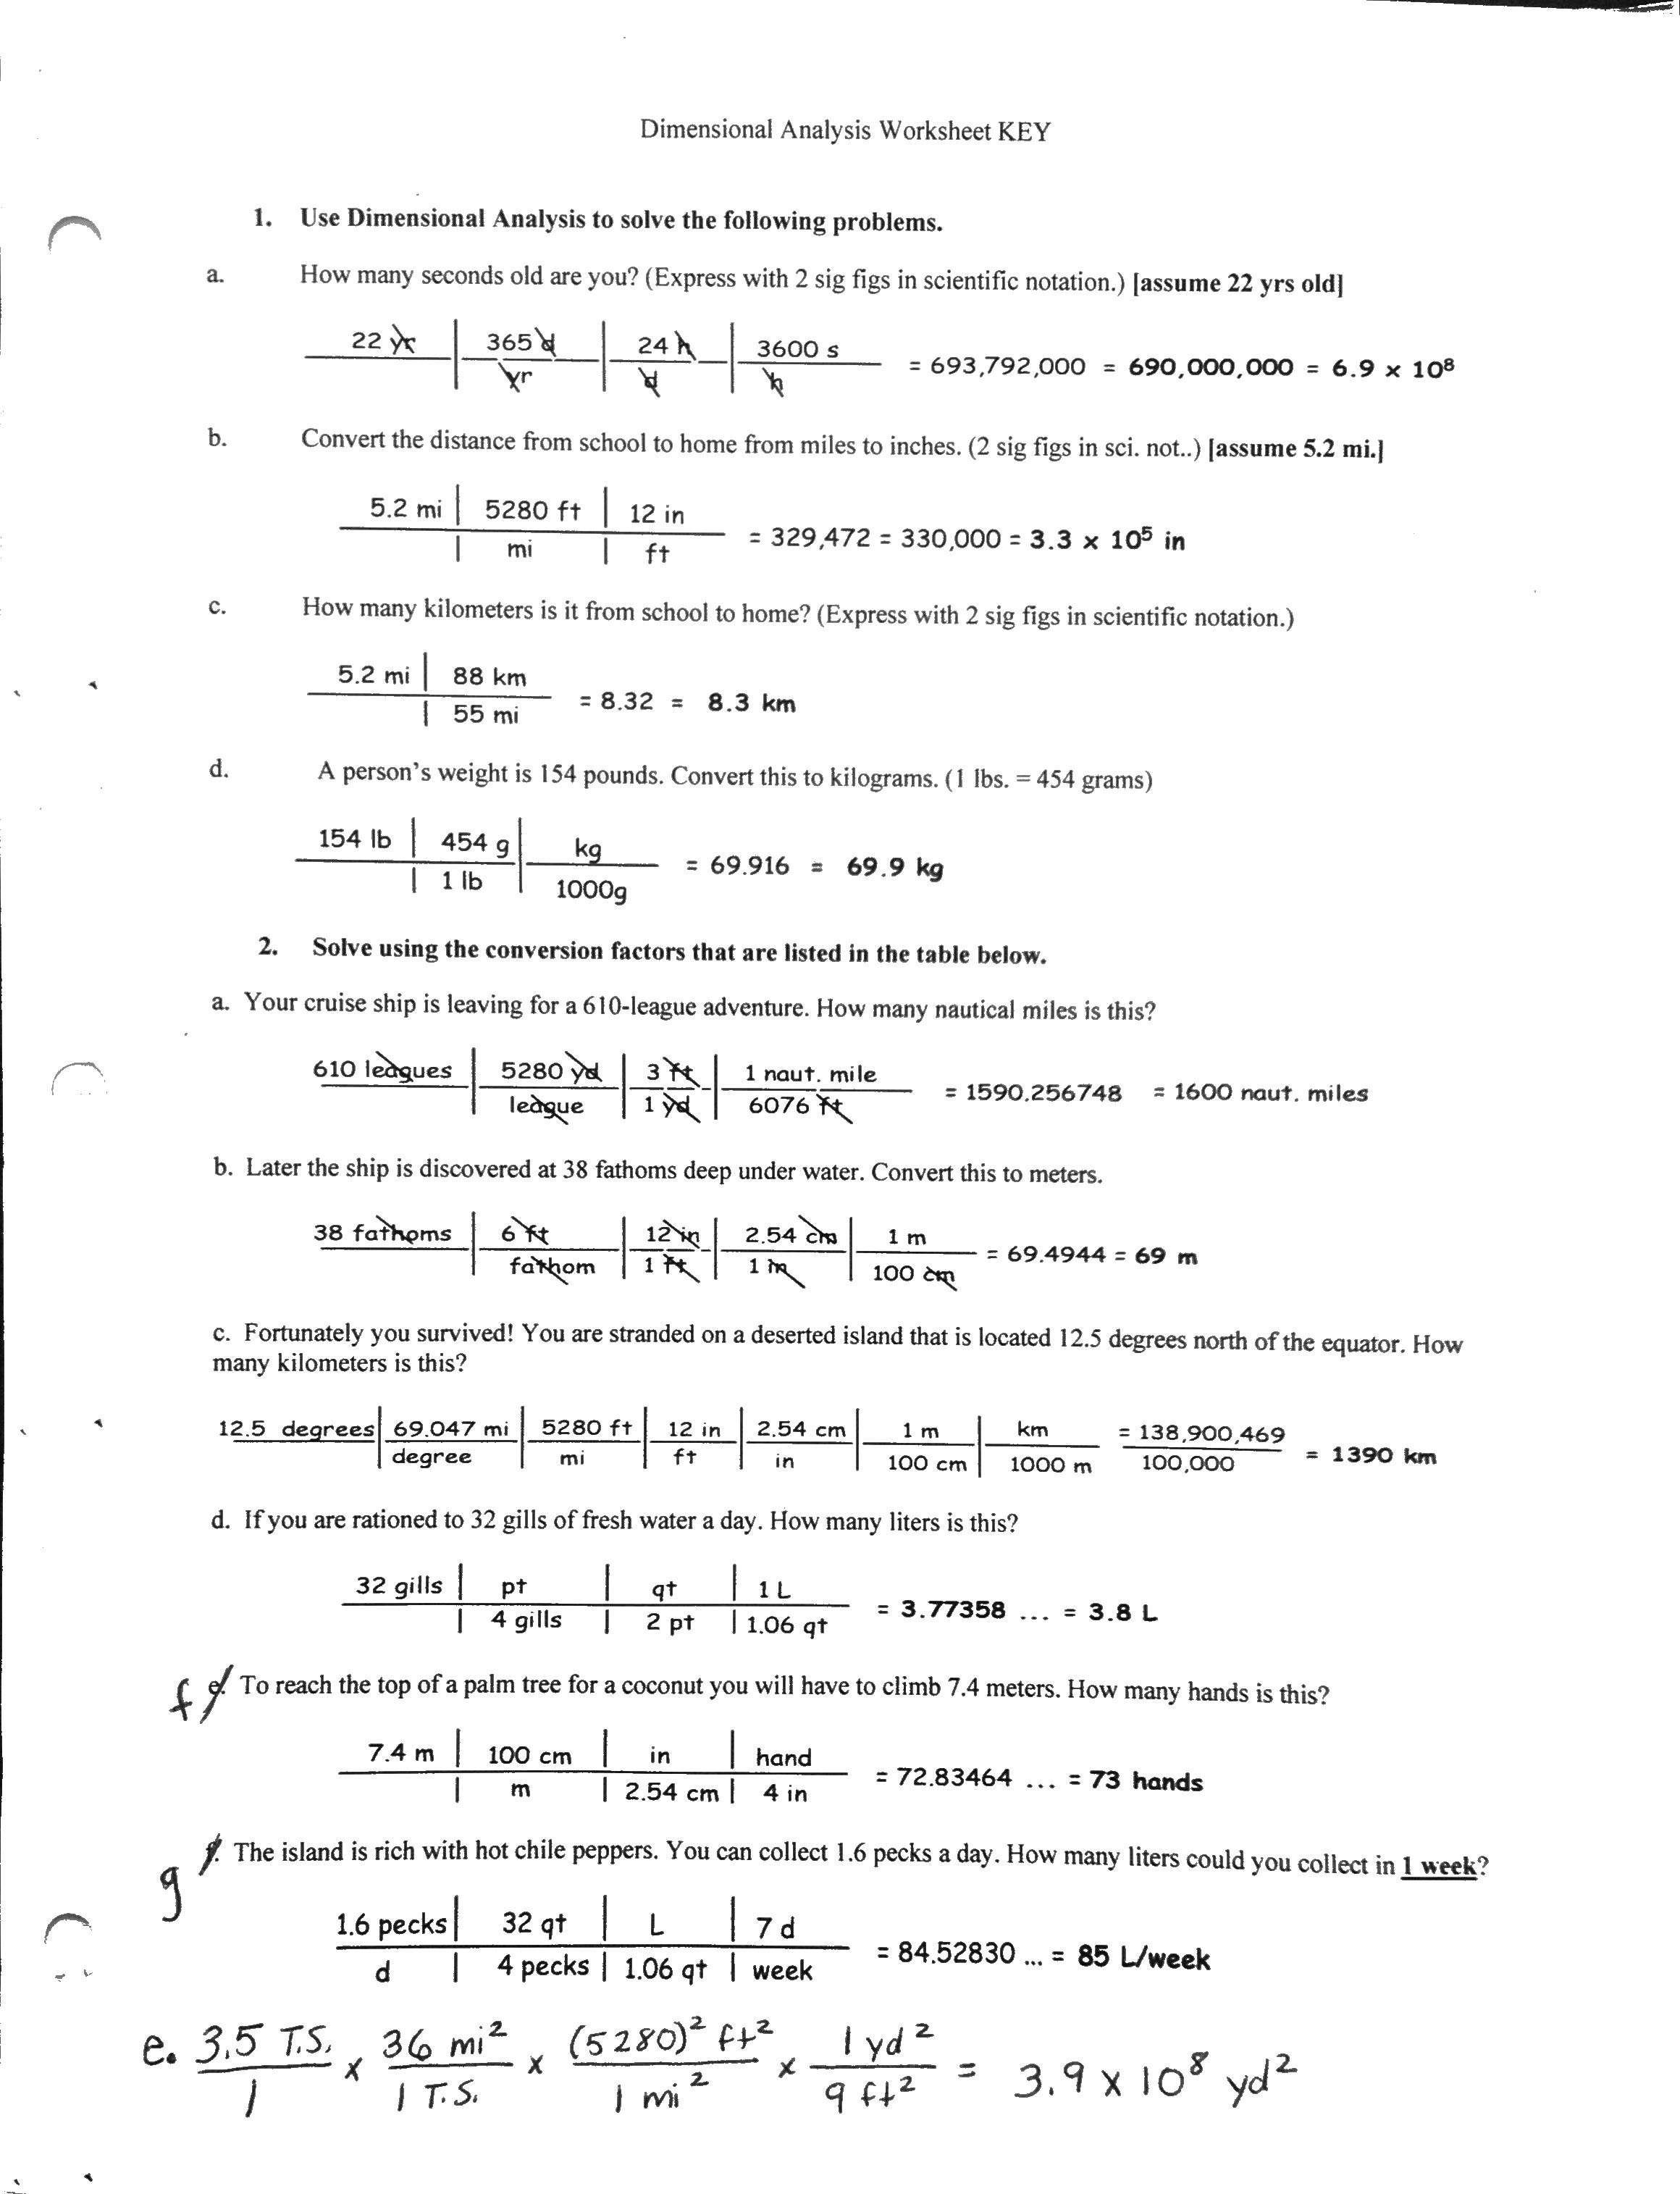 29 Dimensionalysis Worksheet Answers